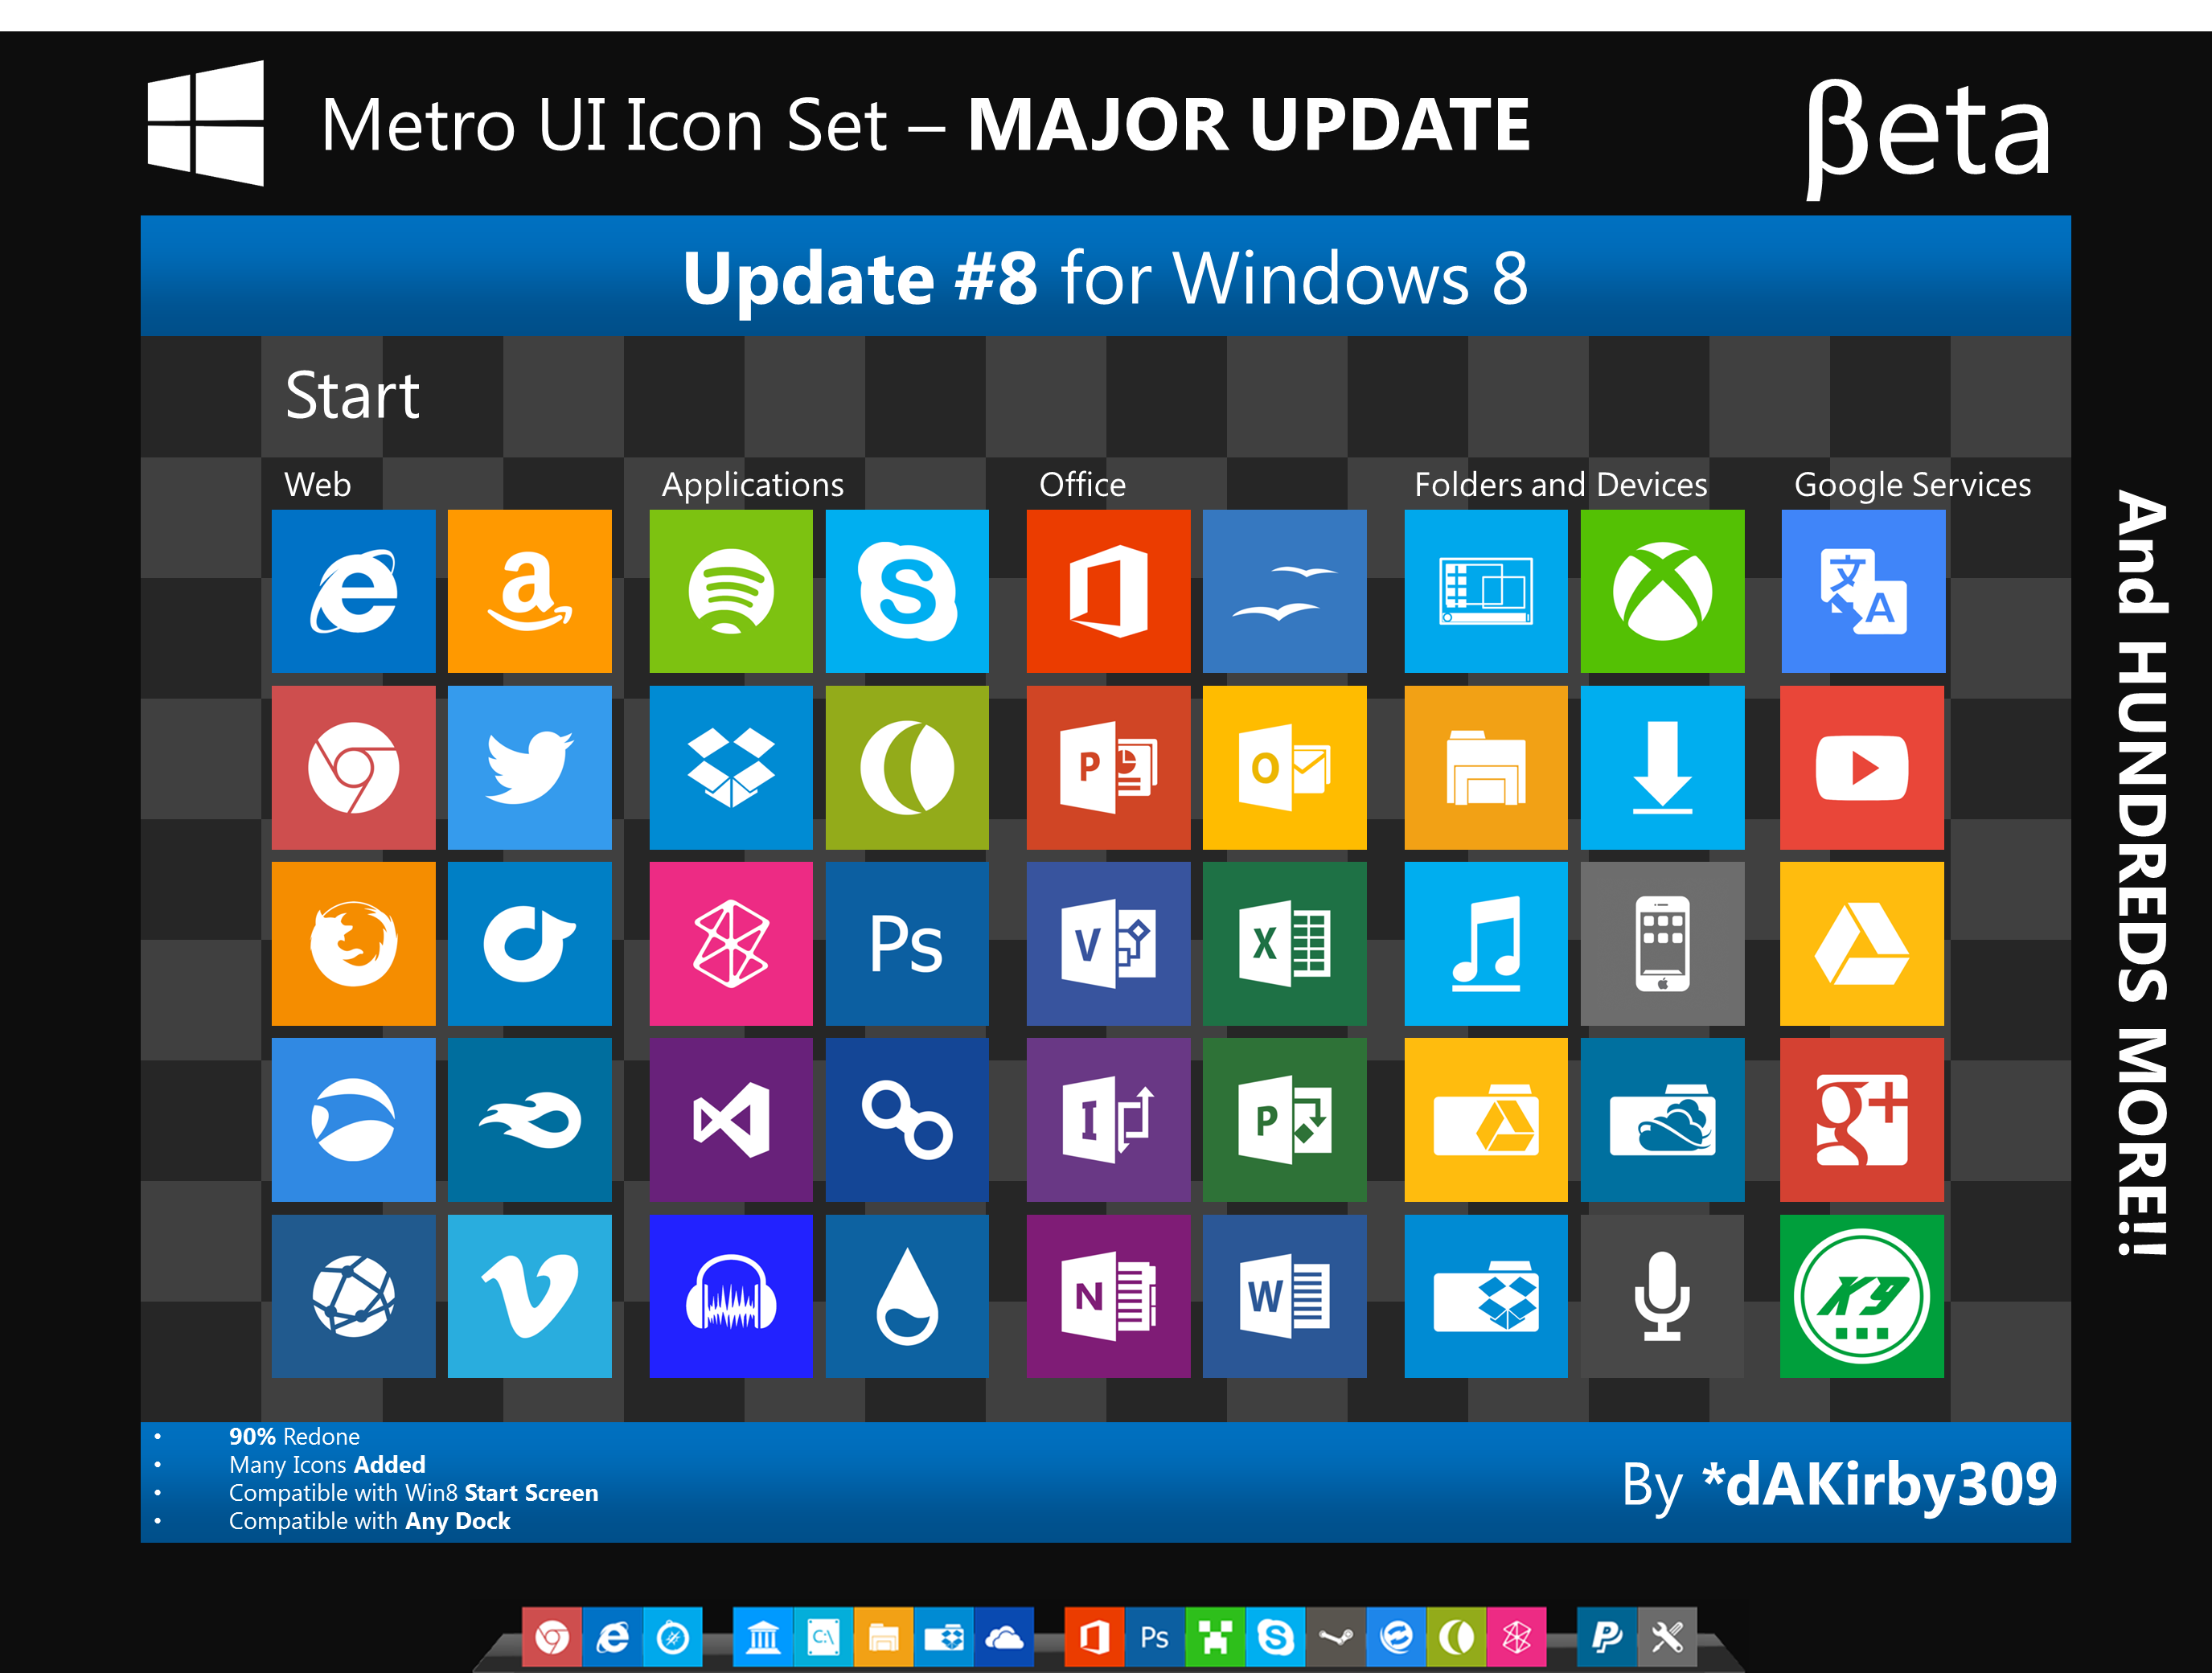 BETA - Metro UI Icon Set (CLOSED) by dAKirby309 on DeviantArt